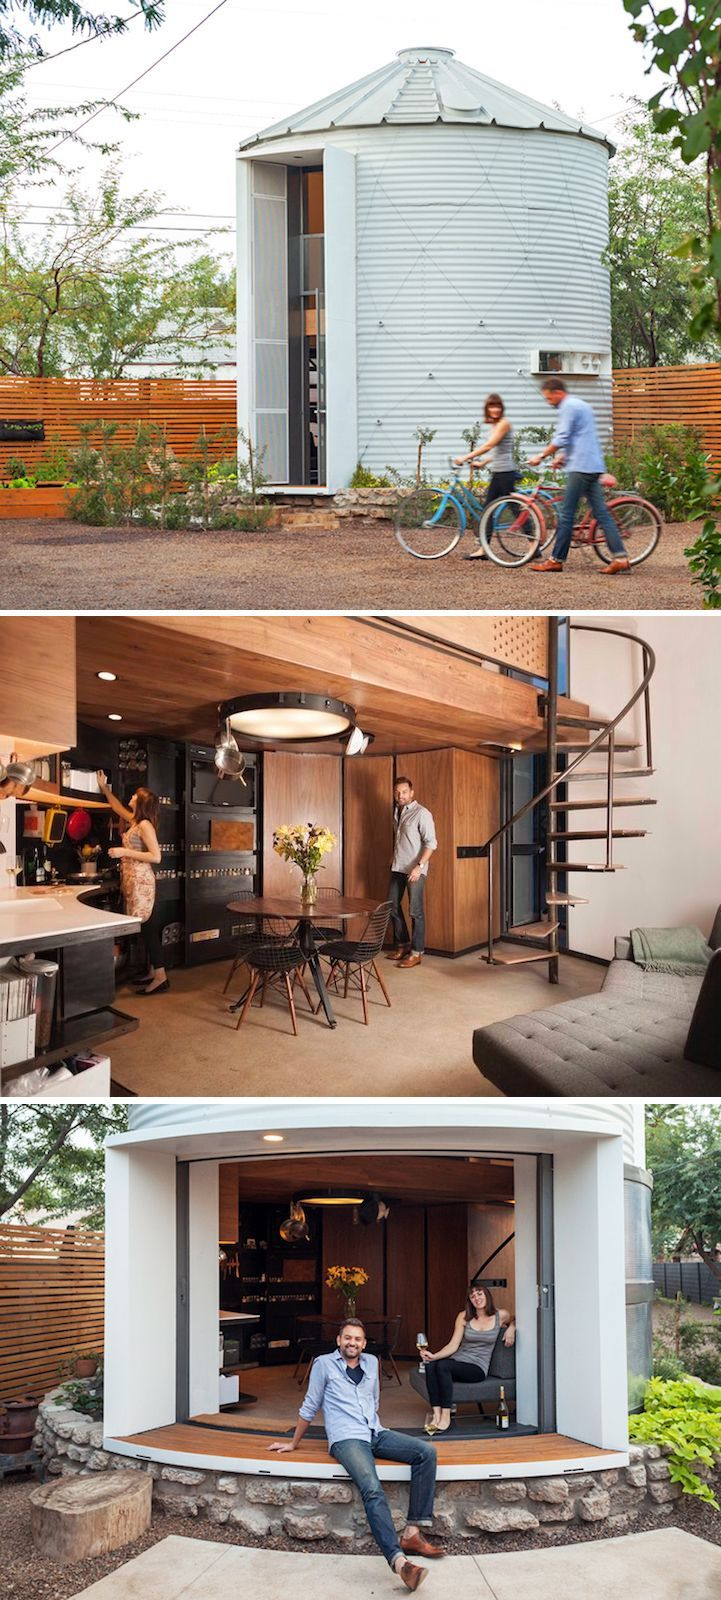 Architect Christoph Kaiser turned a 340-square-foot grain silo into a two-story home for him and his wife.